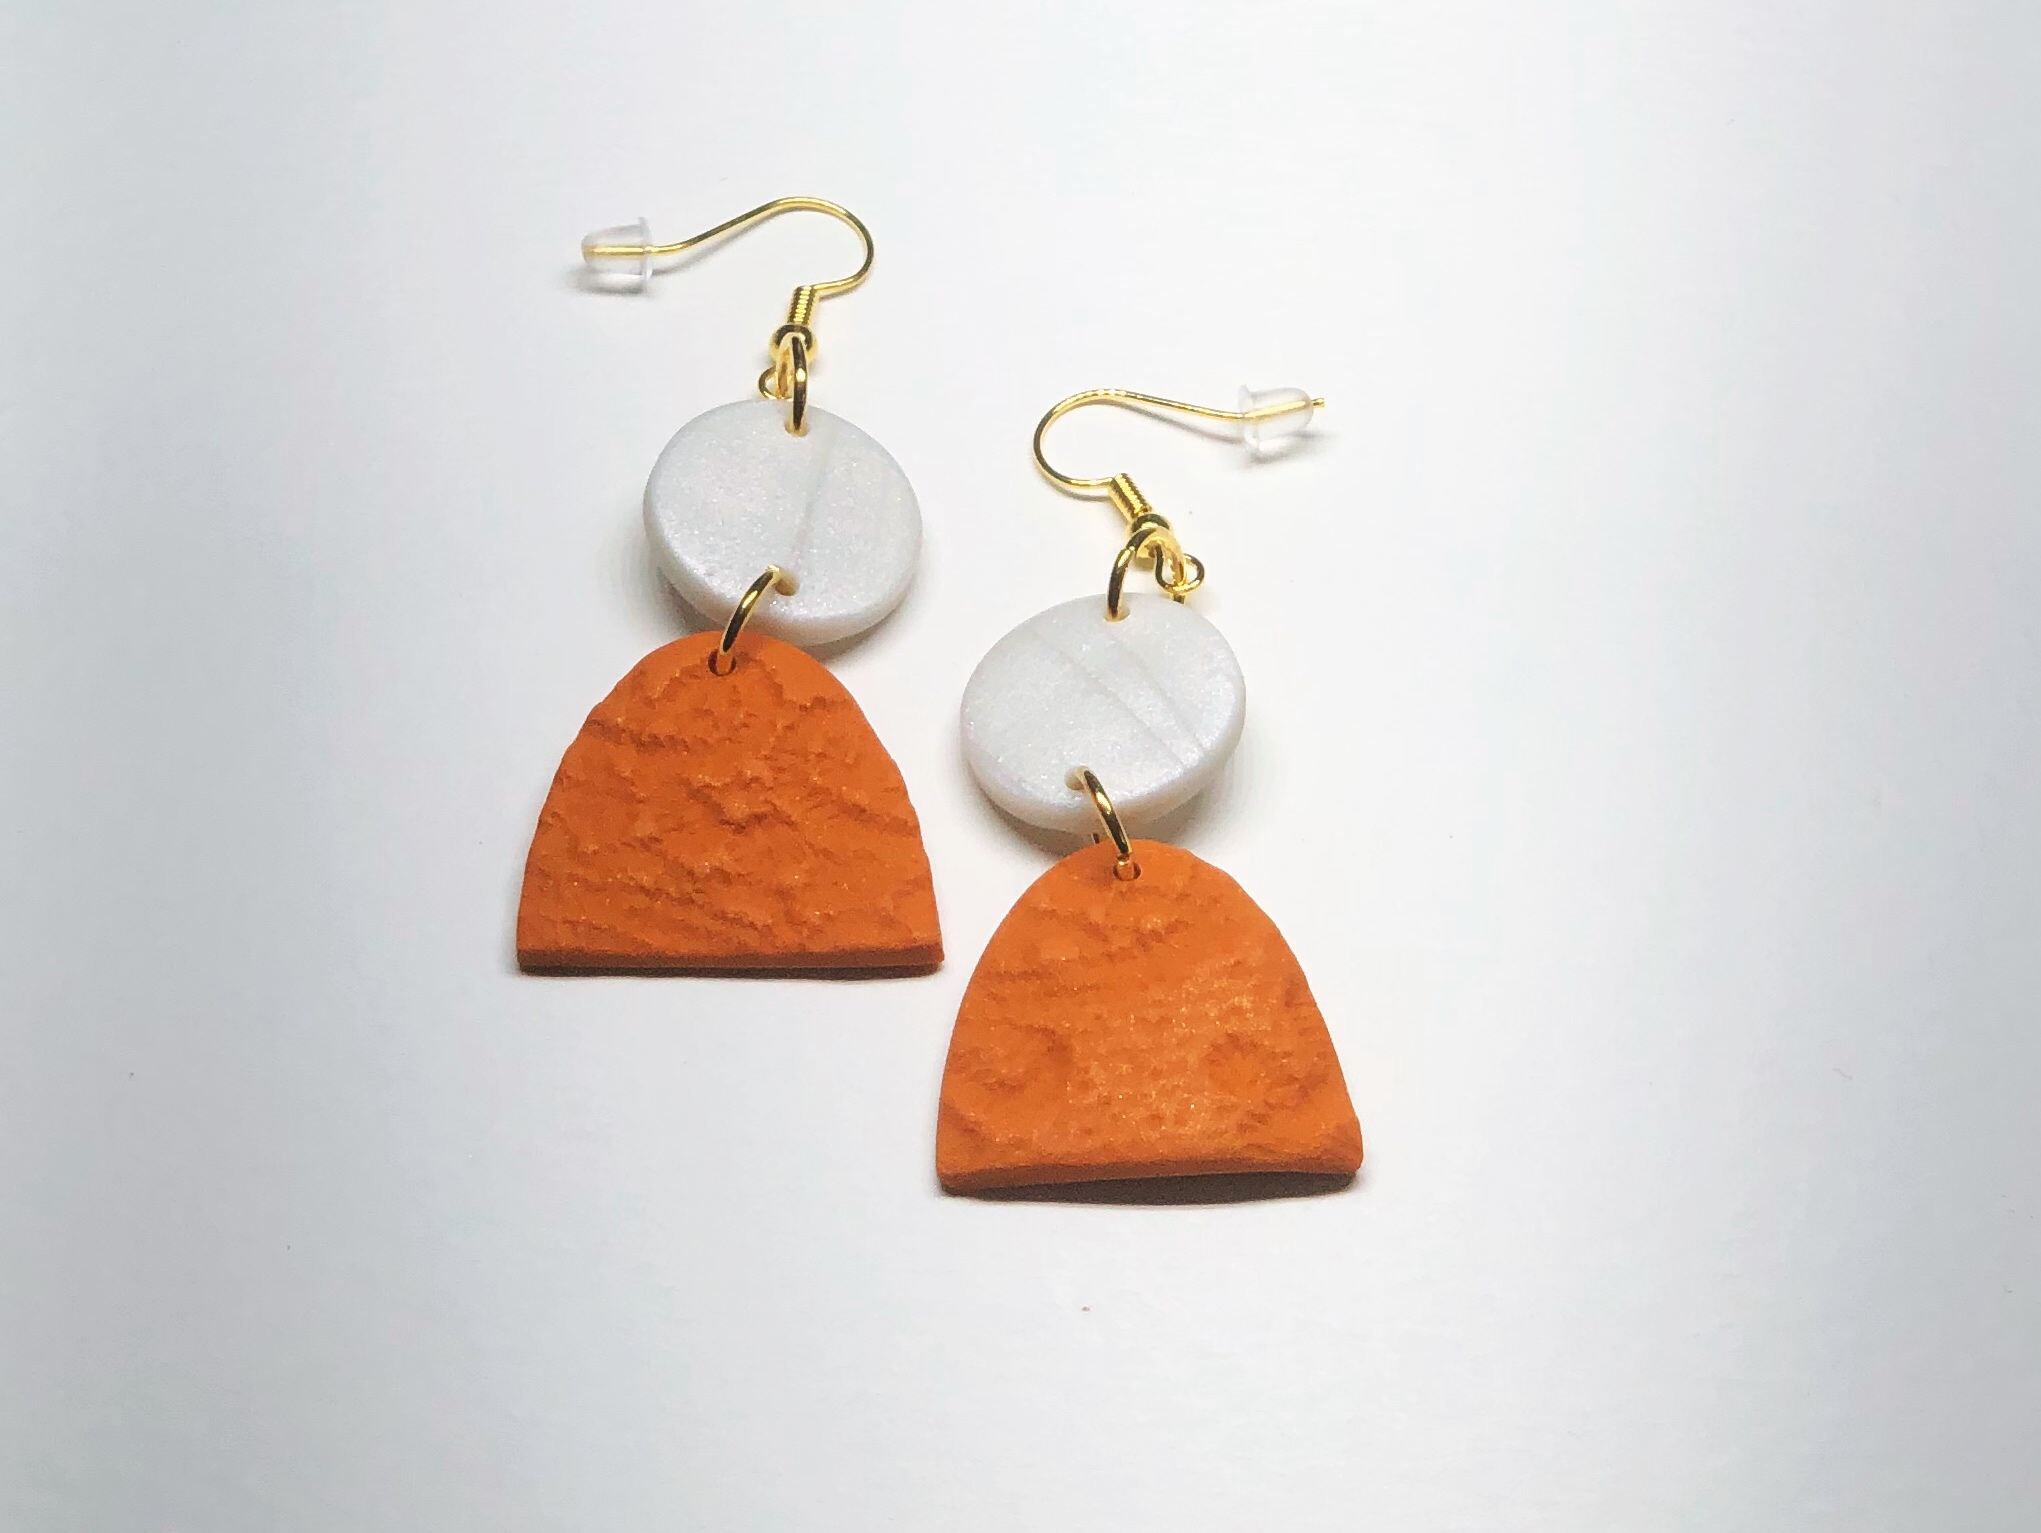 Product image Chantilly Drop Earring in Mother of Pearl and Gold Marmalade Orange